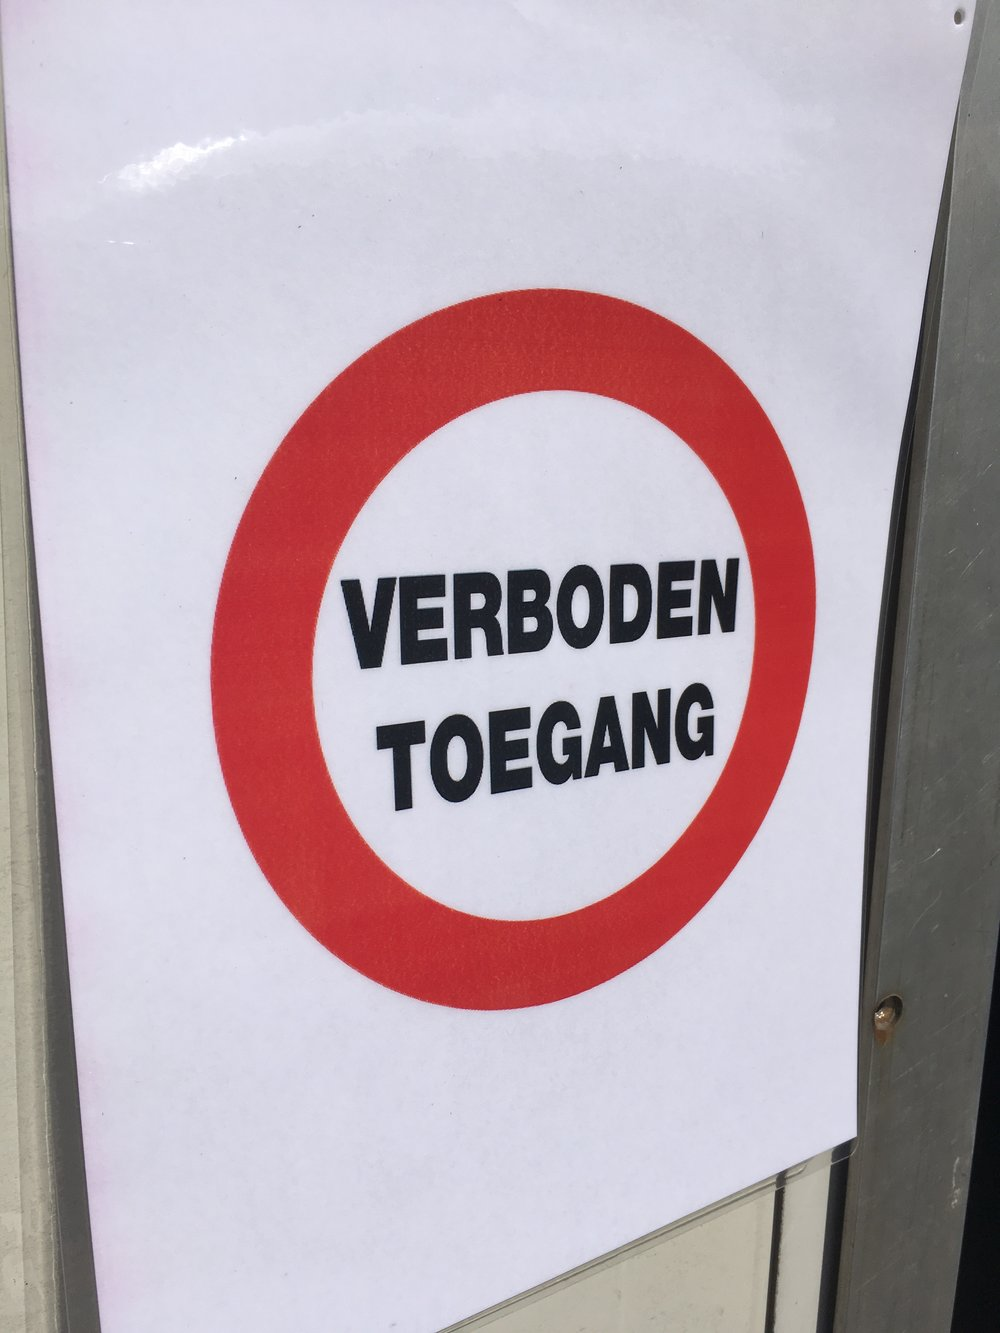 This sign must only be for Dutch visitors!